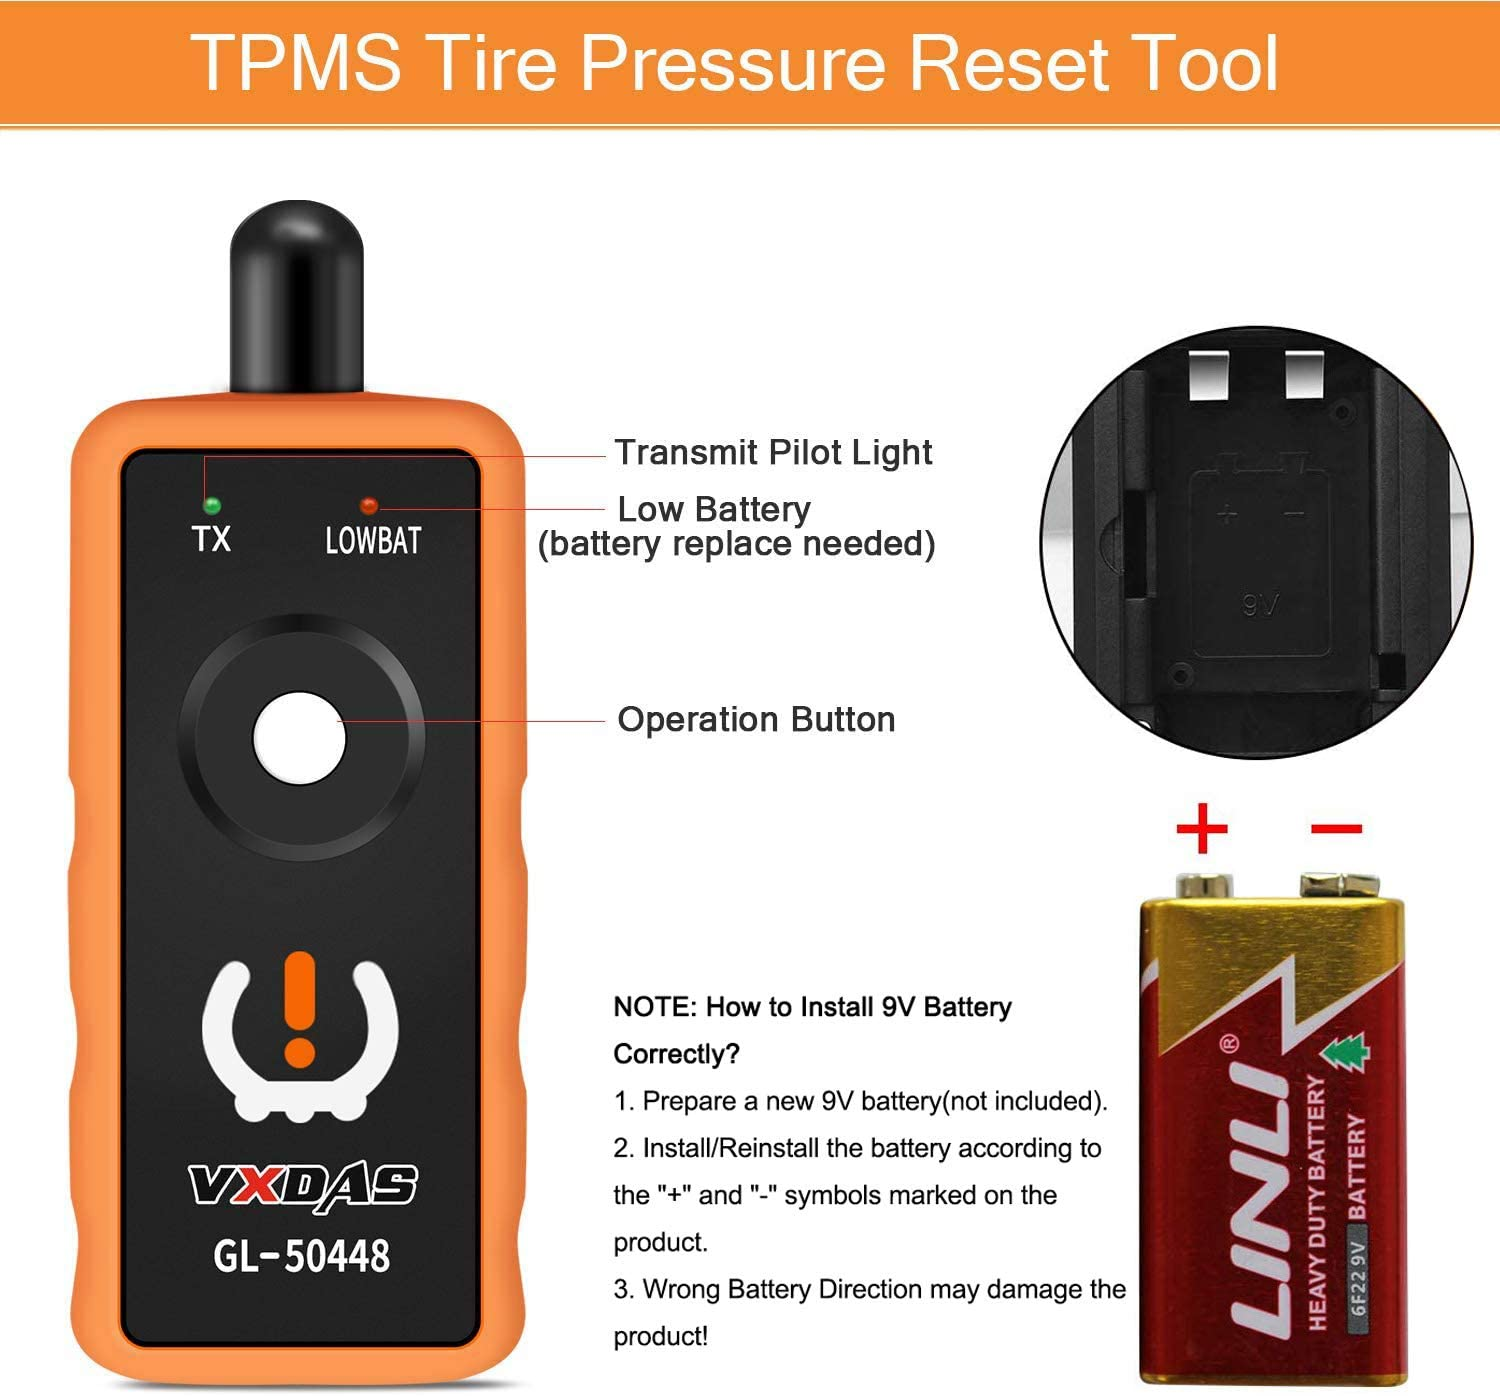 Arozk Gl-50448 TPMS Tire Pressure Monitor Sensor Auto Relearn Reset Activation Tool OEC-T5 Upgraded EL50448 for GM Series Vehicle 2006-2020